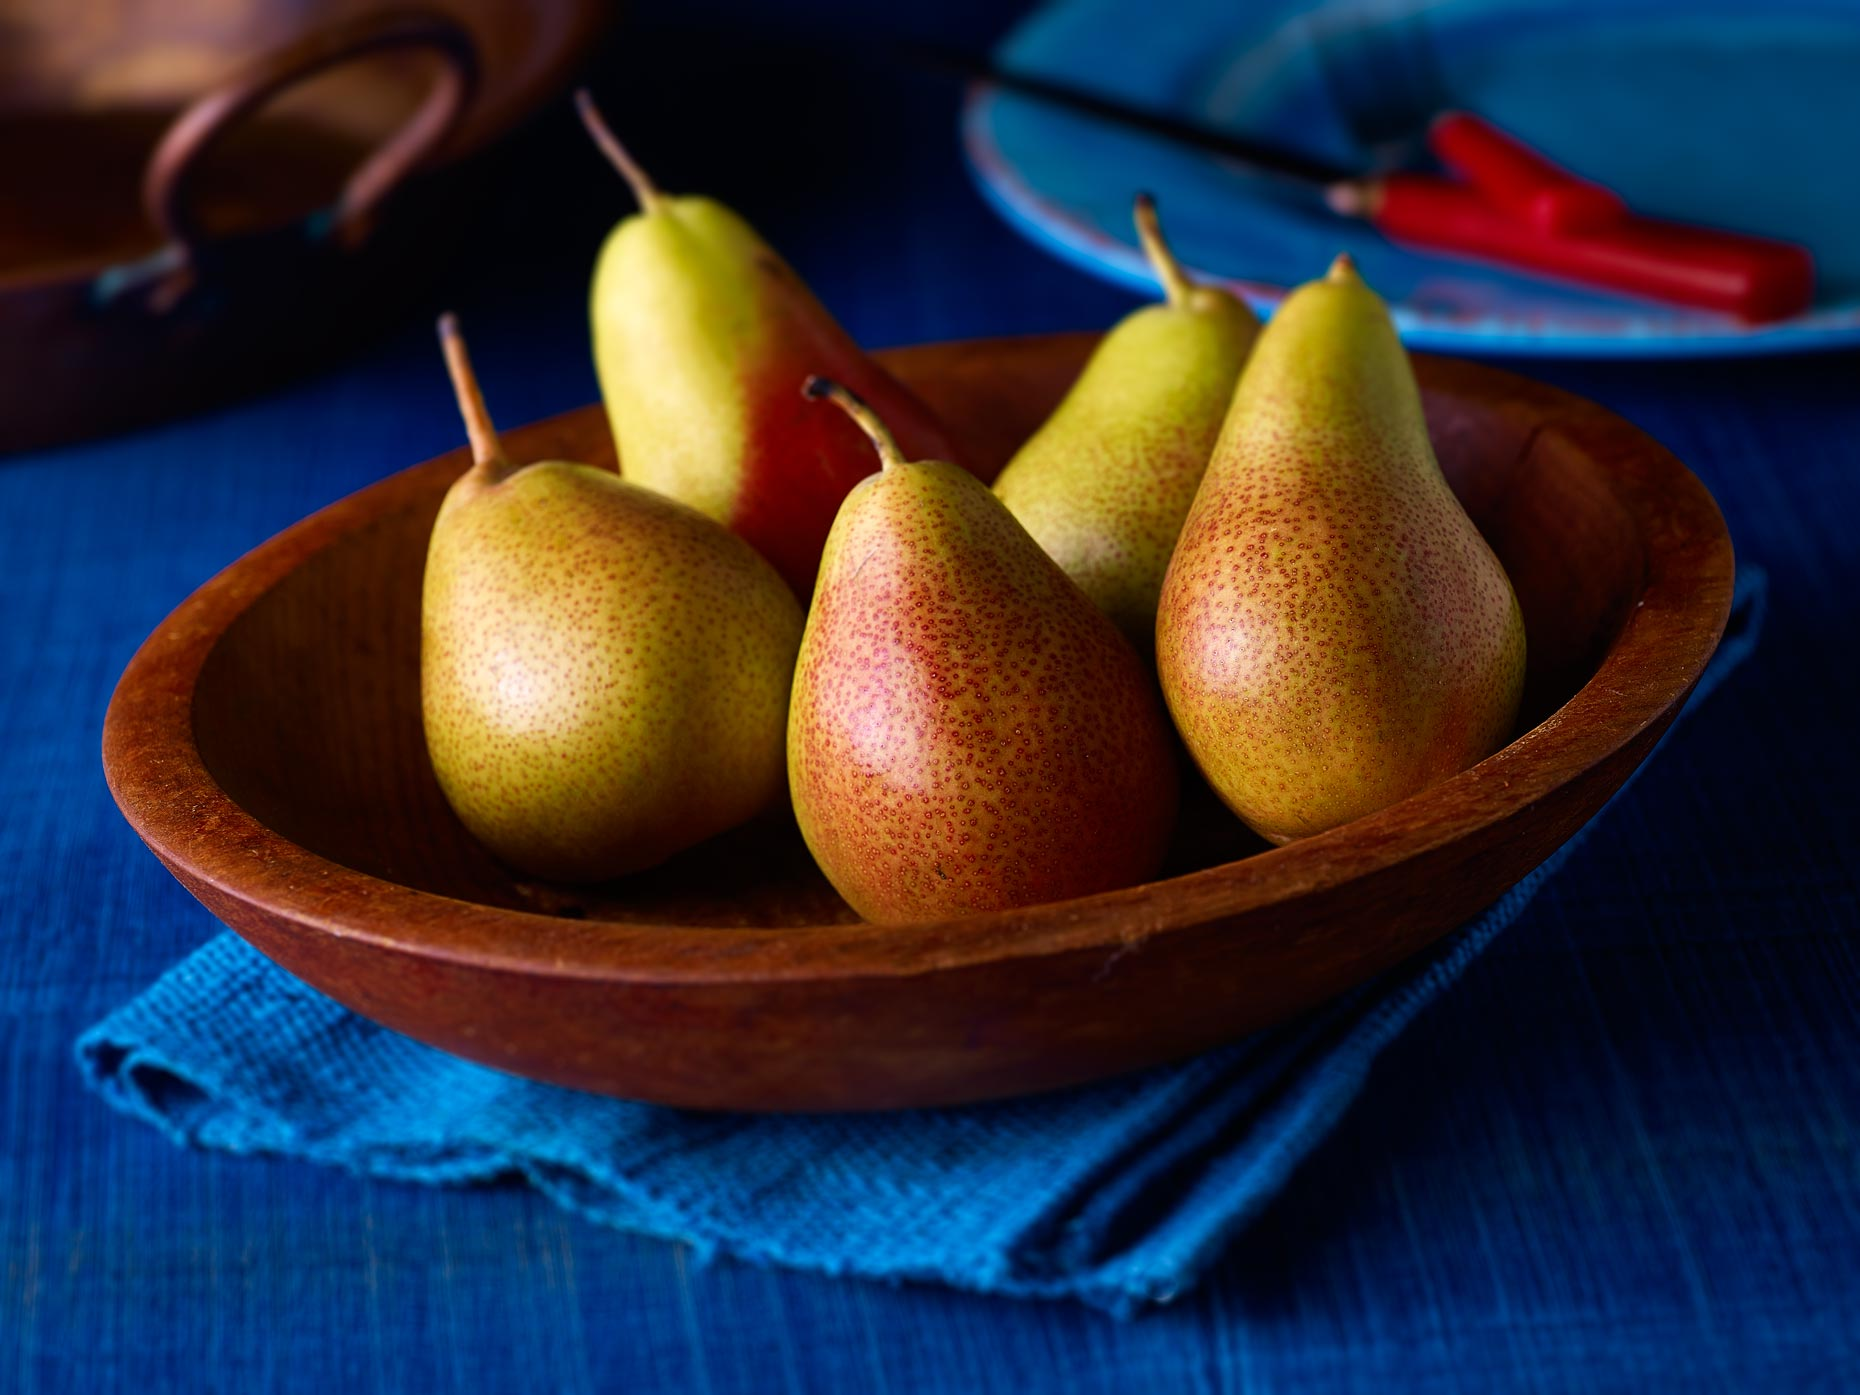 Dessert Photography | Pears in a wooden bowl